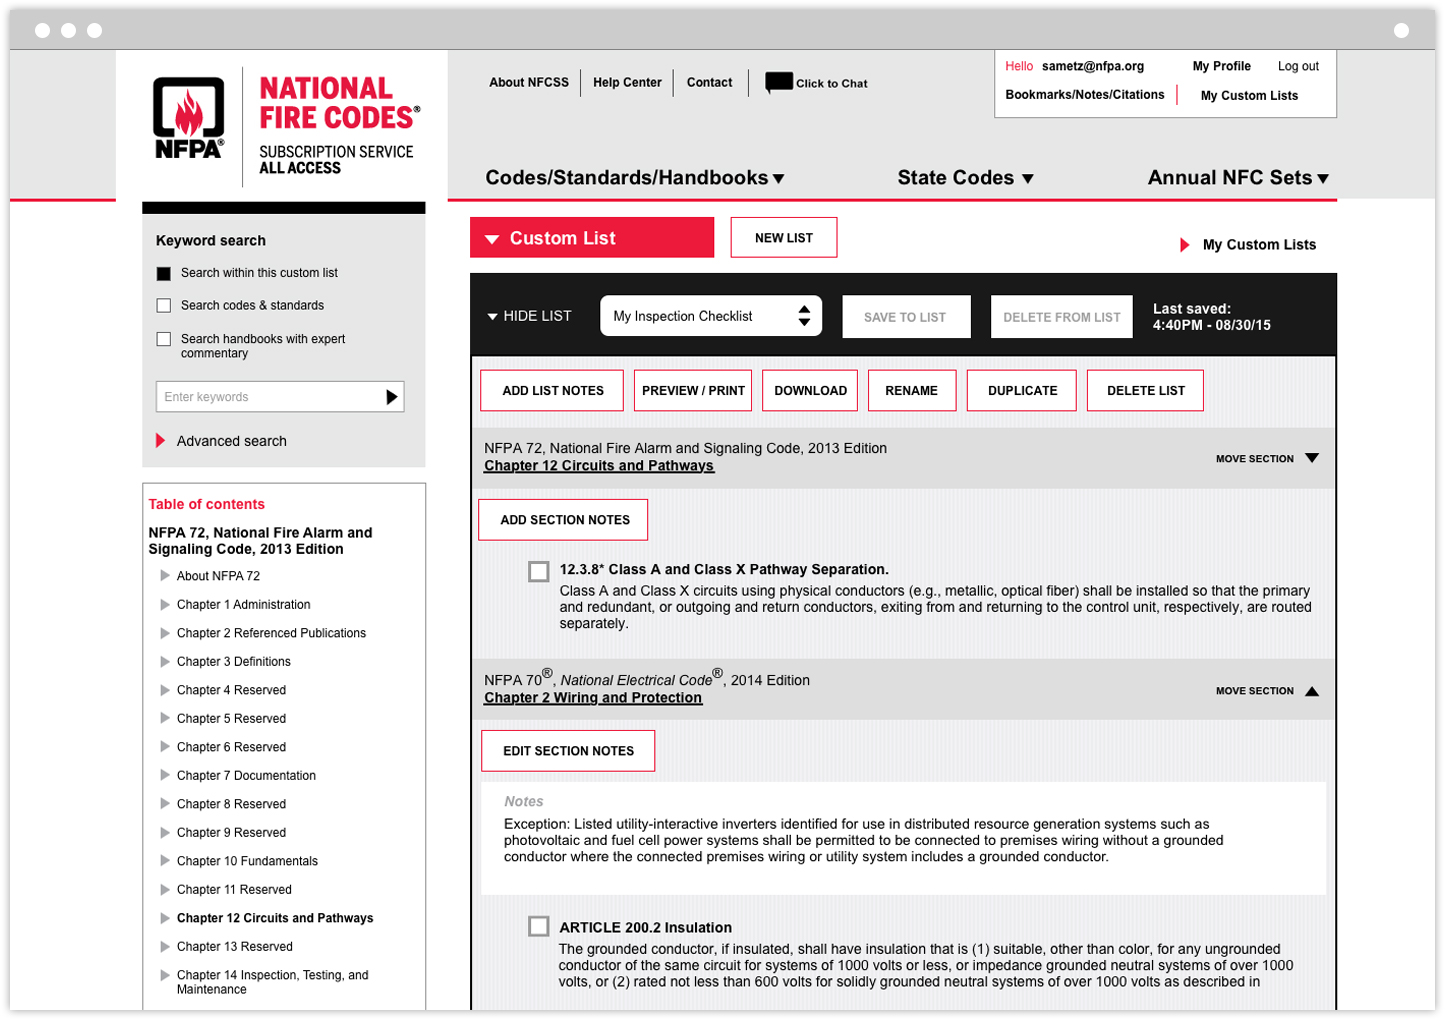 National Fire Codes Subscription Service code builder tool interior page